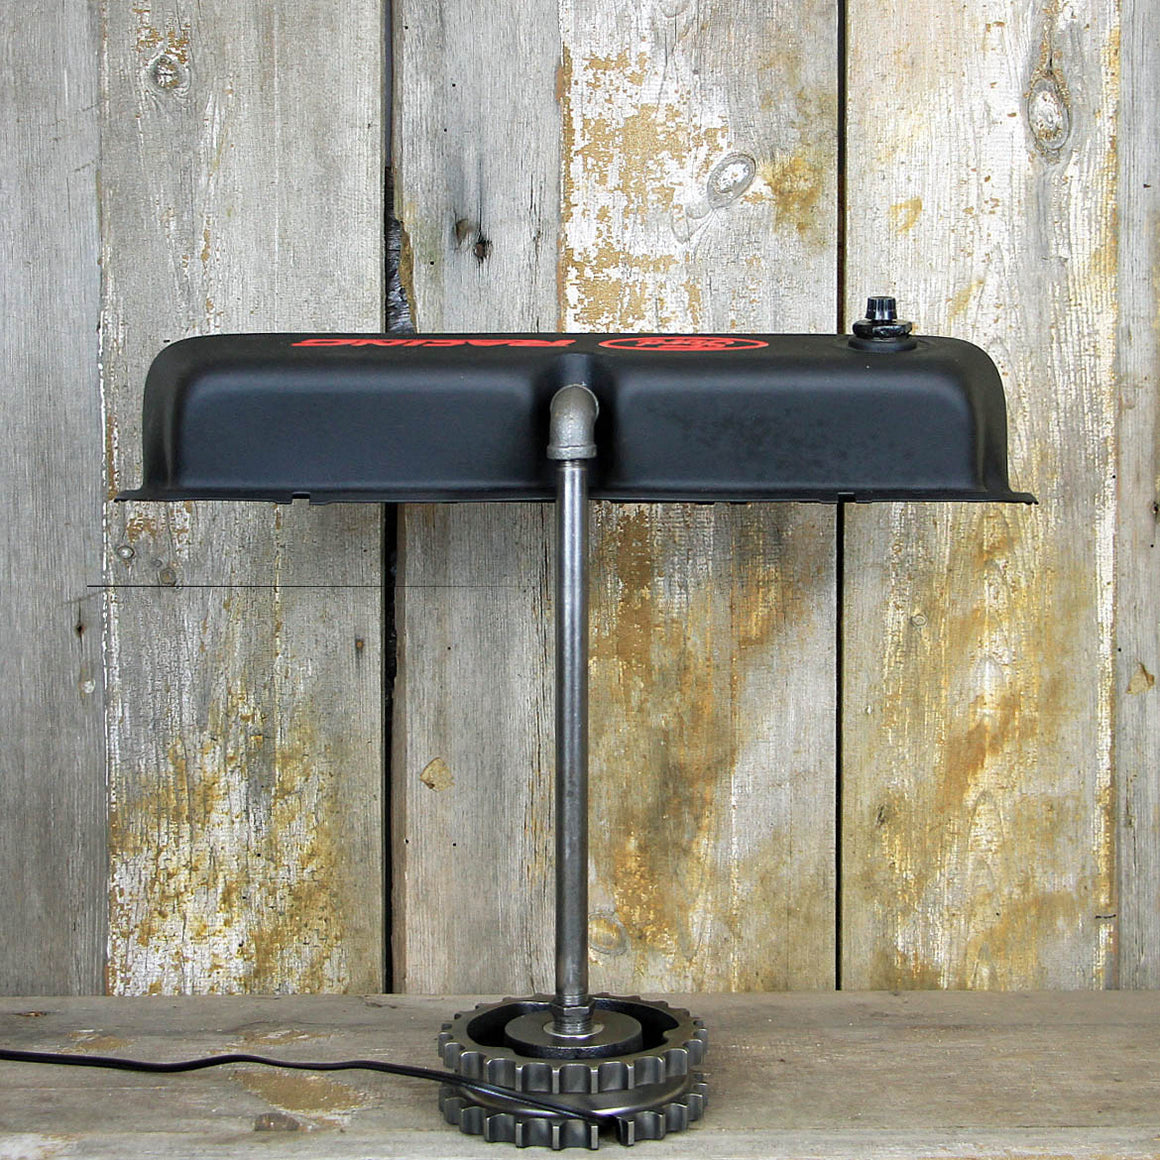 Ford Industrial Desk Lamp - Steampunk Ford Racing Lamp #209 - The Lighting Works